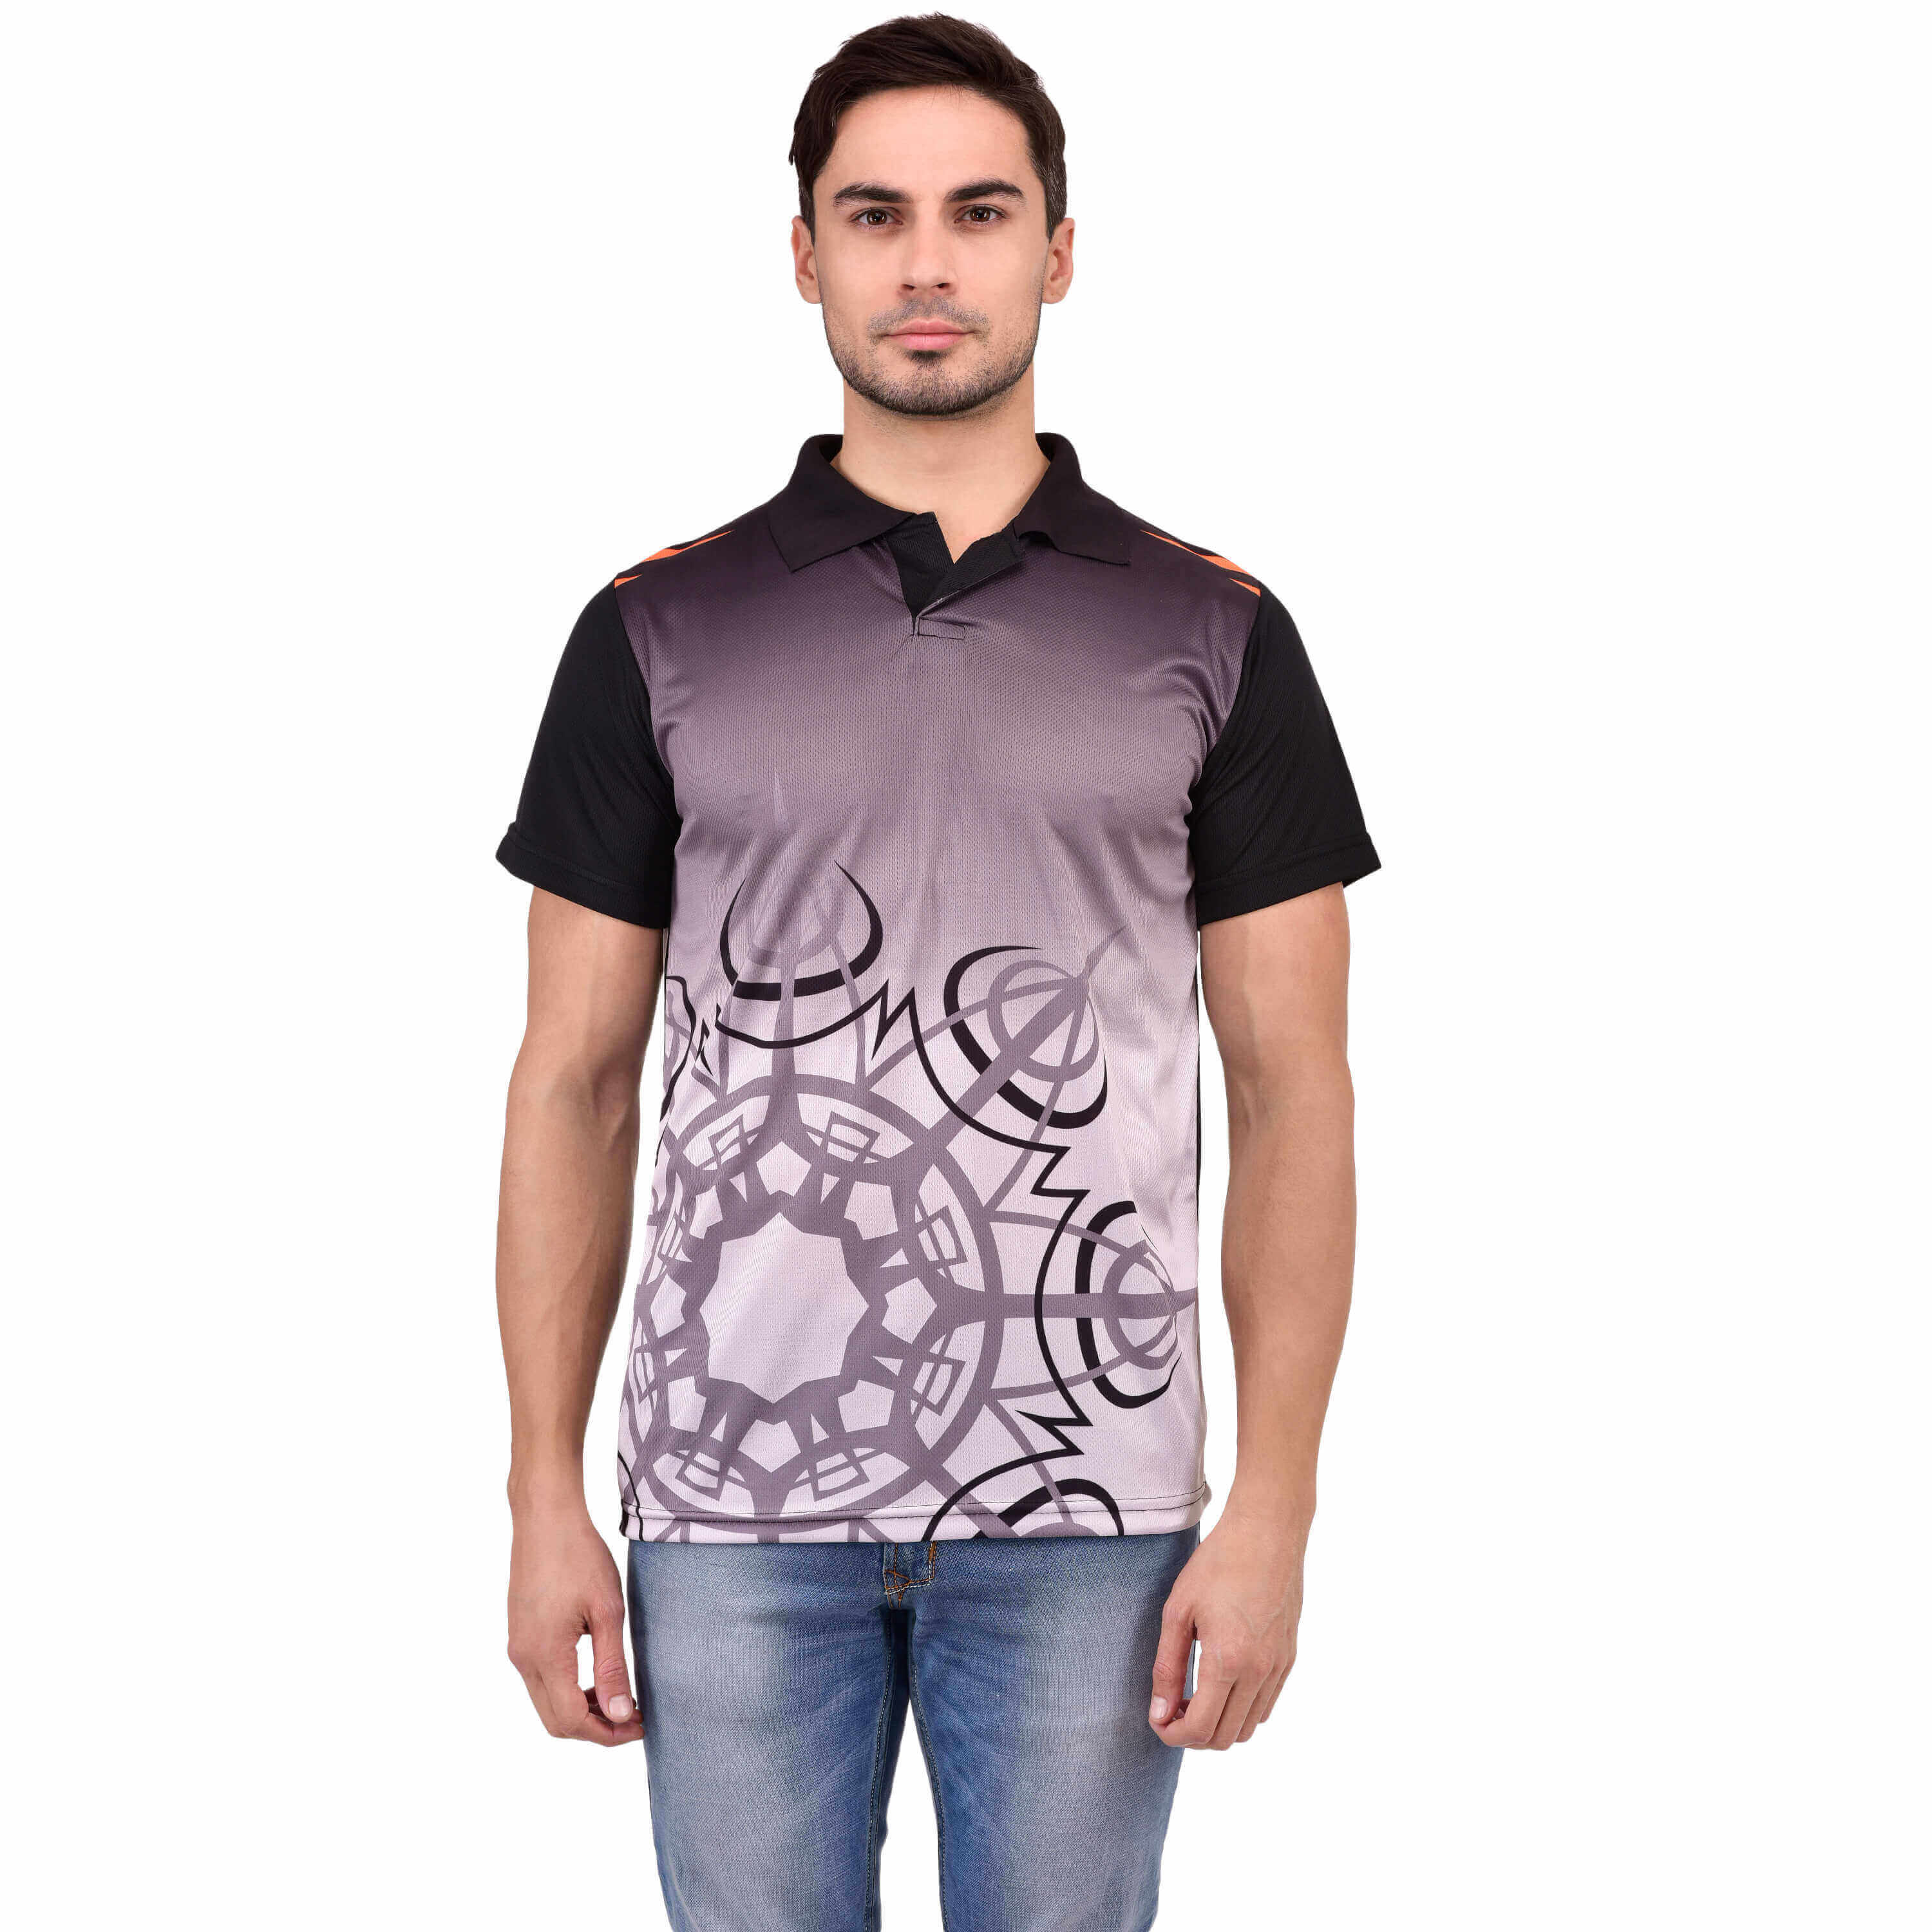 Cheap T Shirts Manufacturers in Singapore